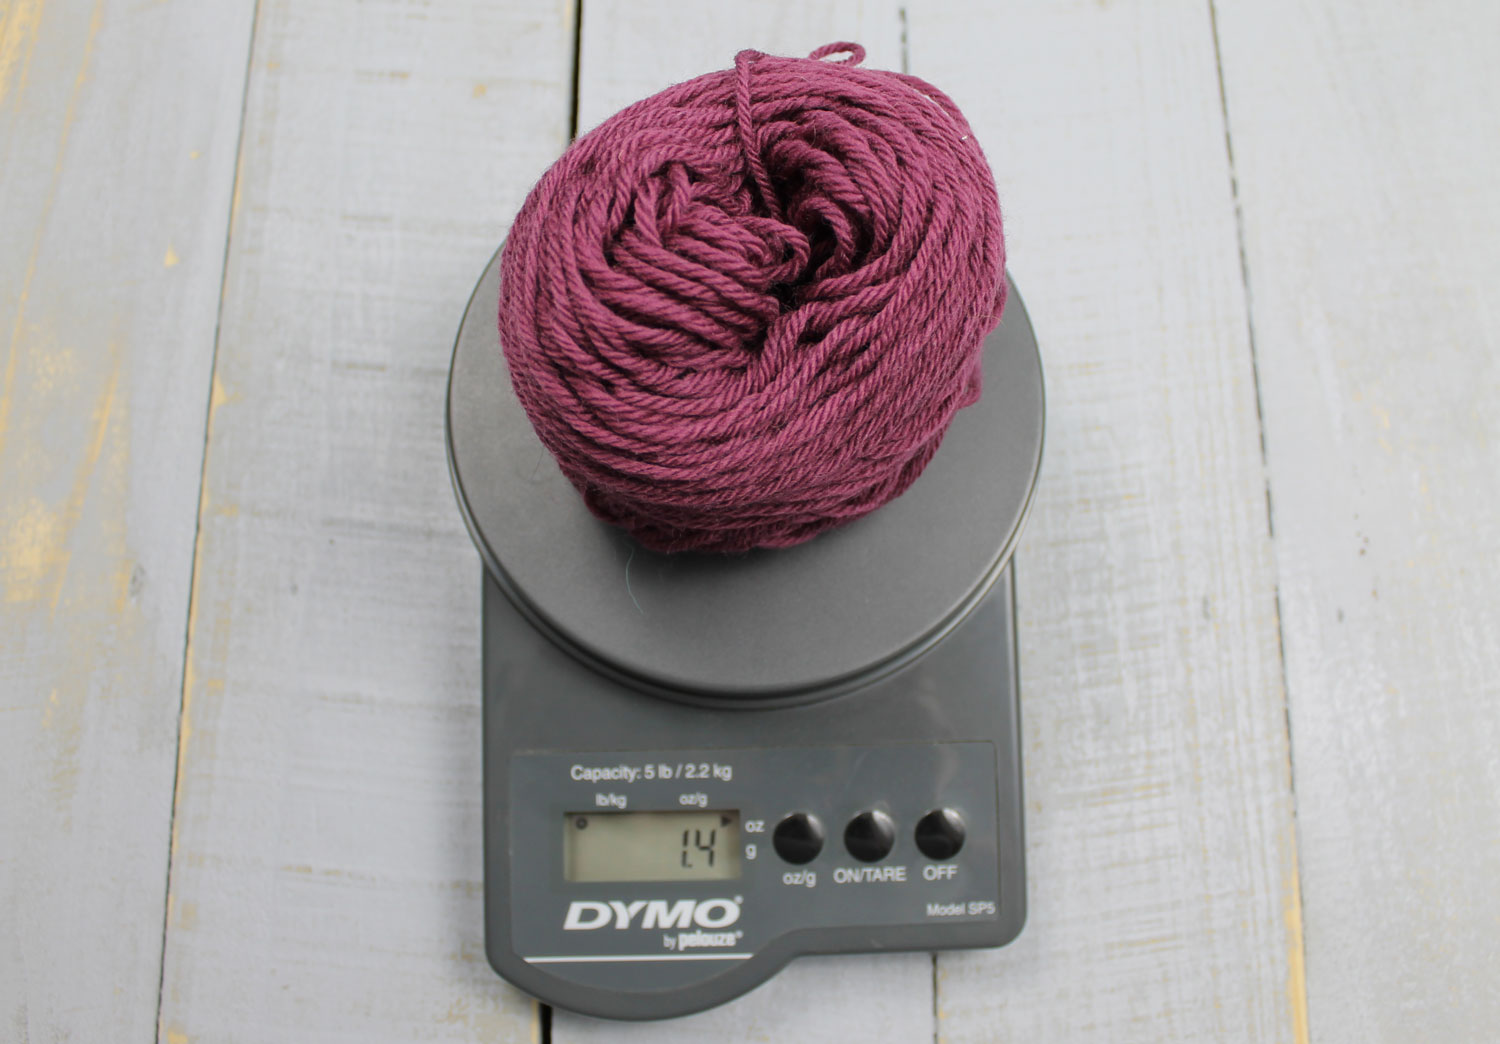 Calculating yarn yardage